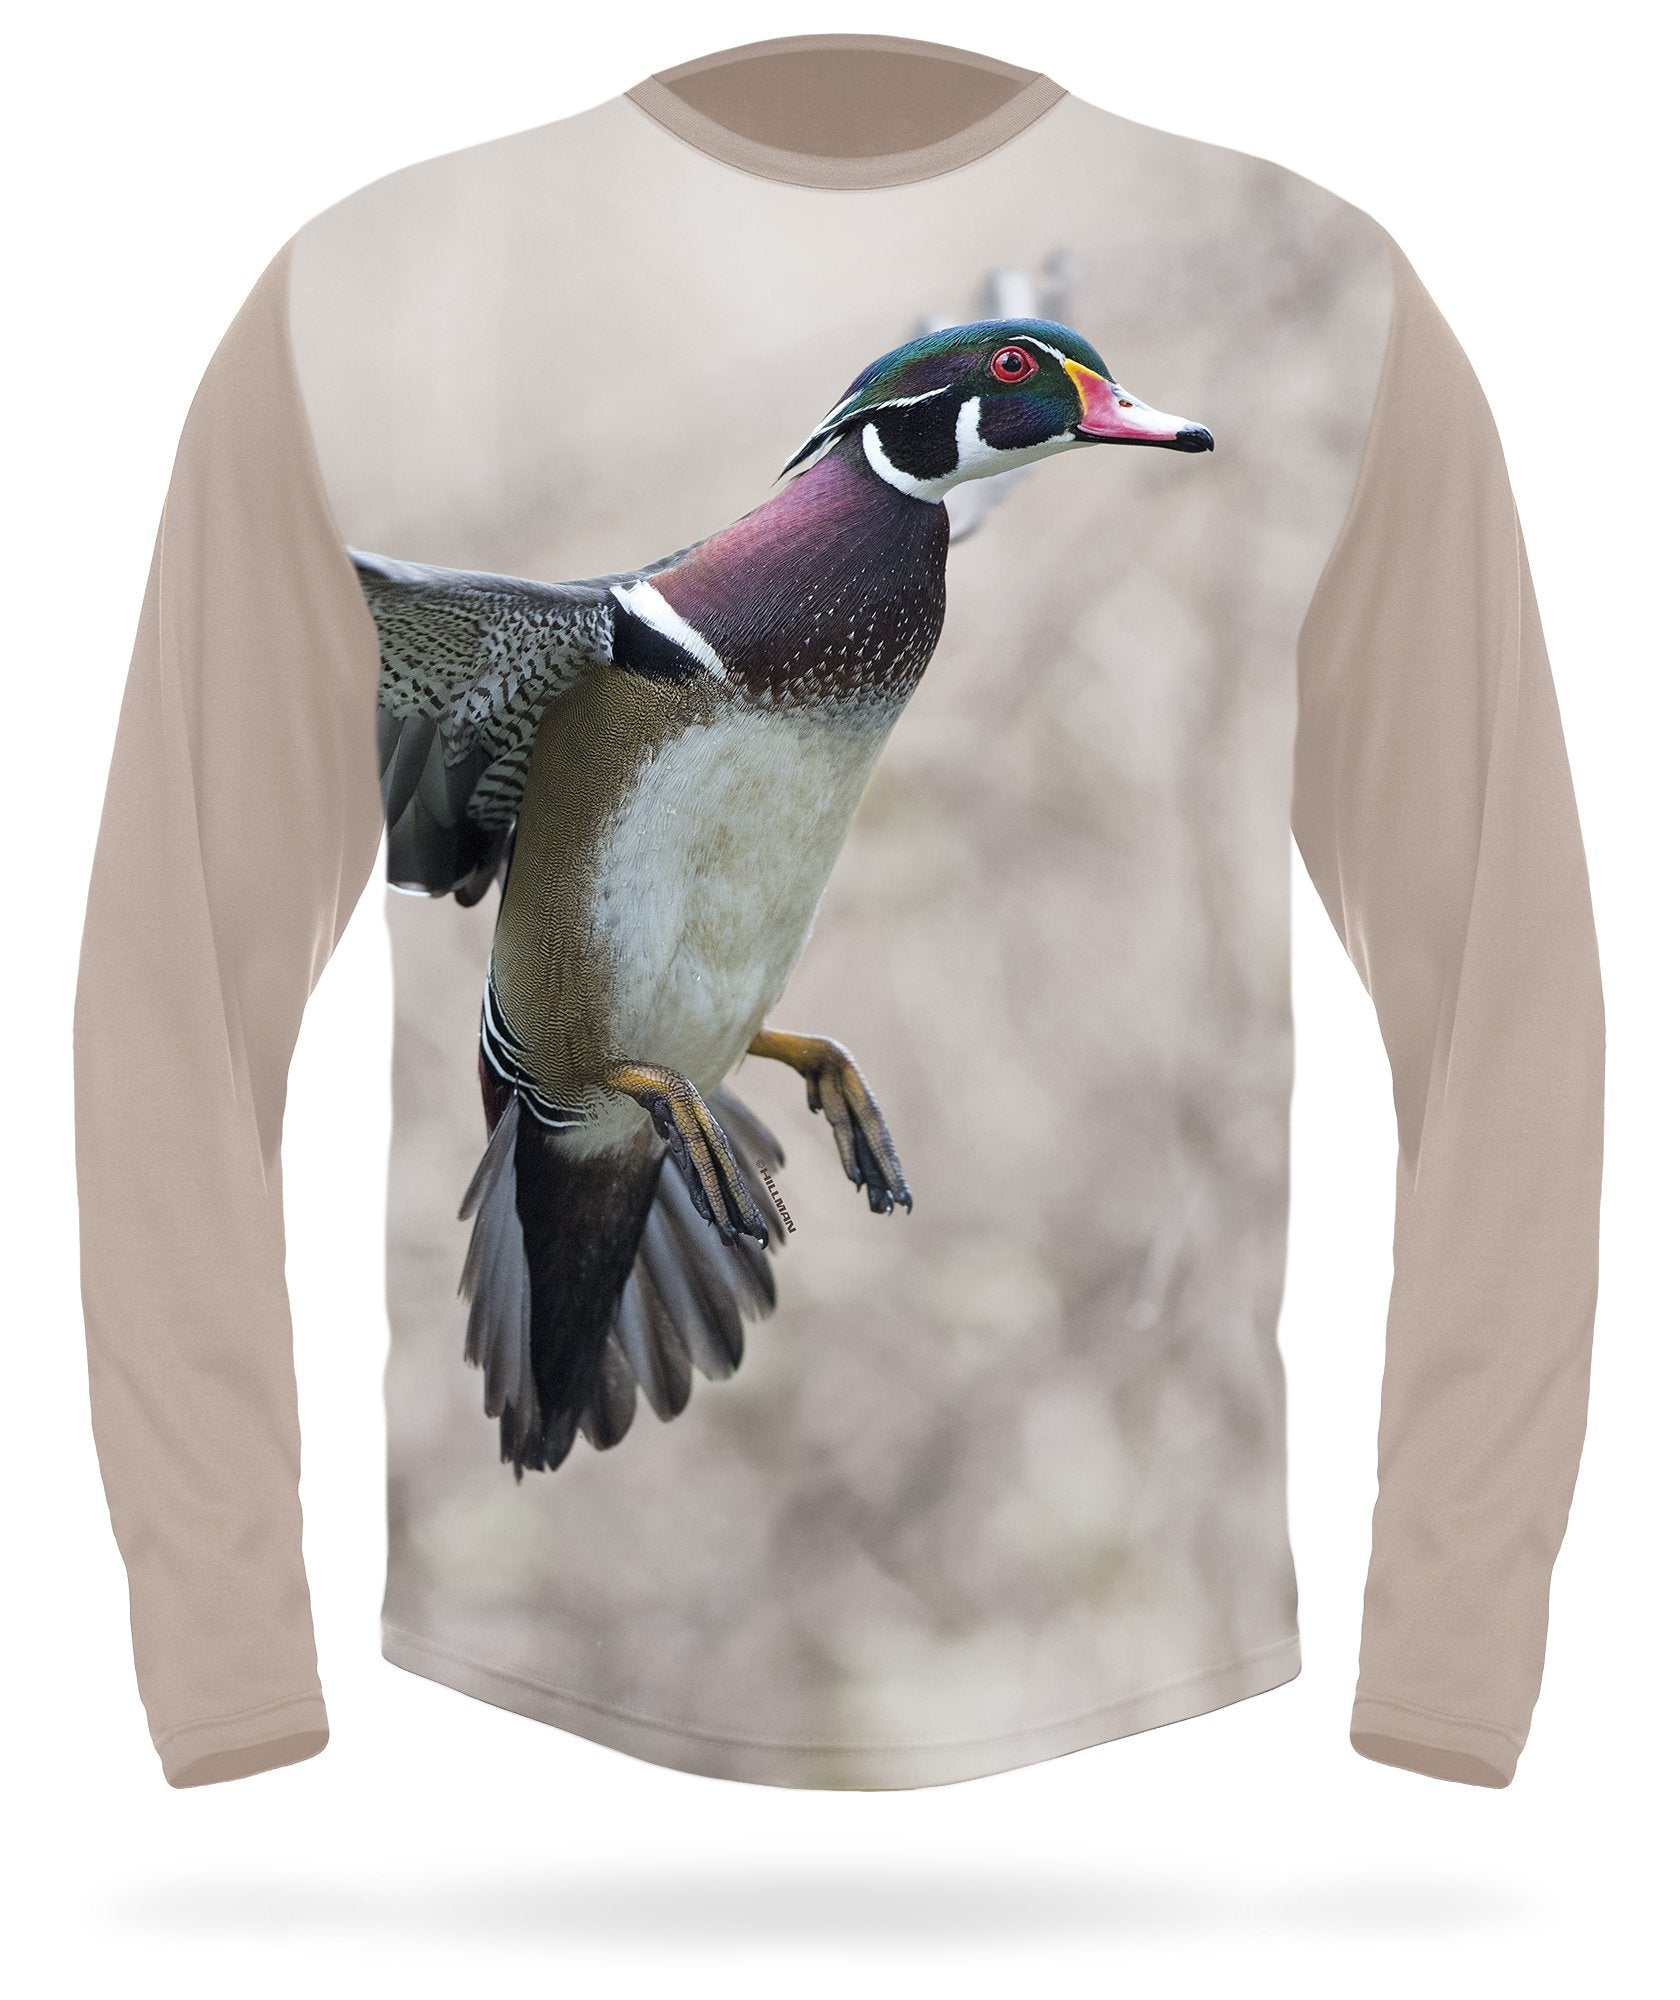 Wood Duck T-shirt Long Sleeve by HILLMAN® hunting gear